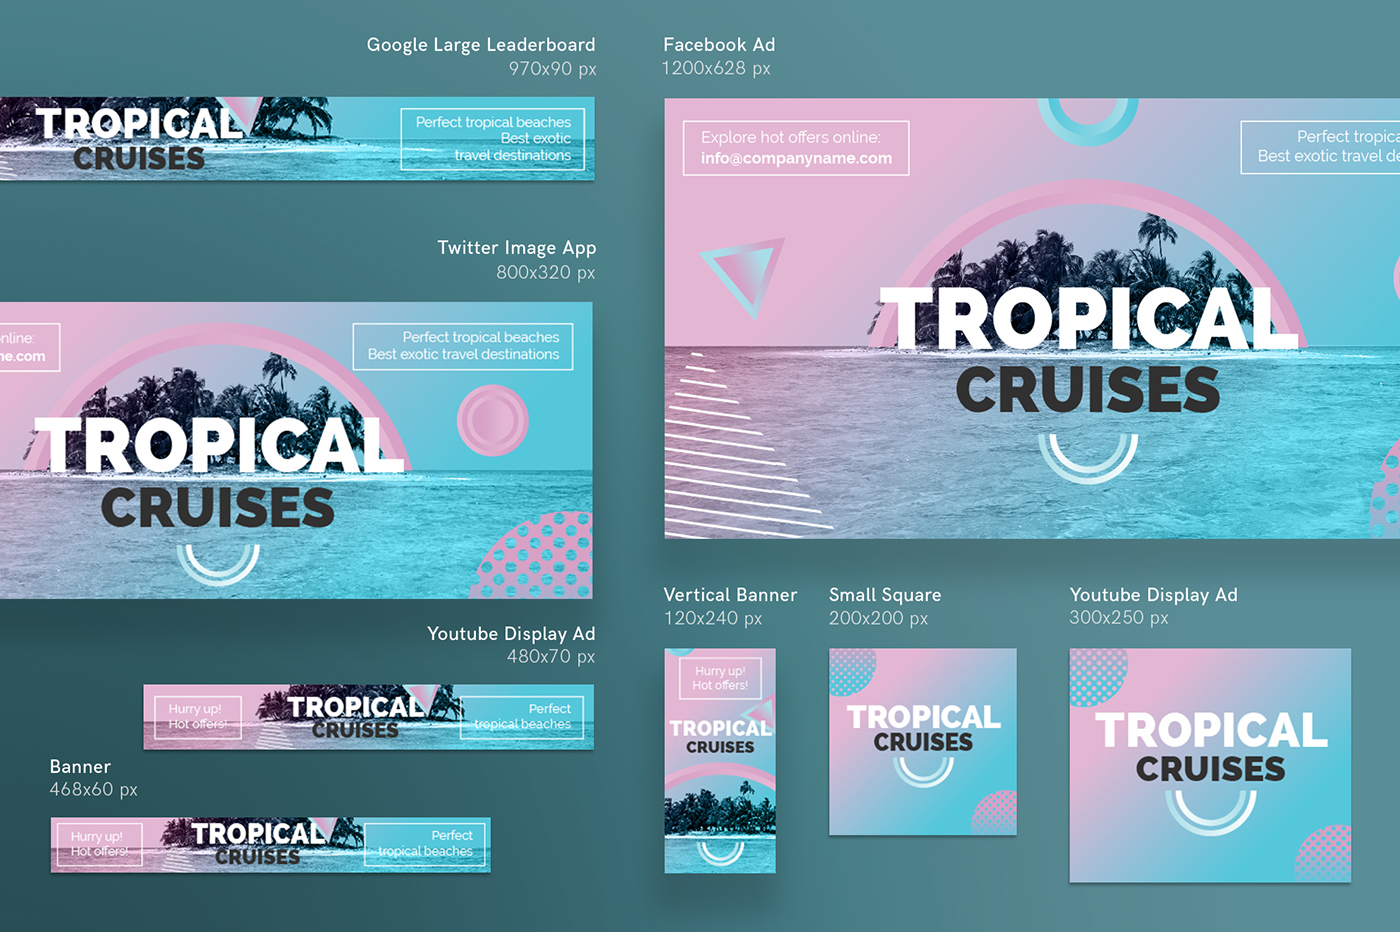 Tropical Cruises Modern And Creative Templates Suite On Behance - Facebook ad design template